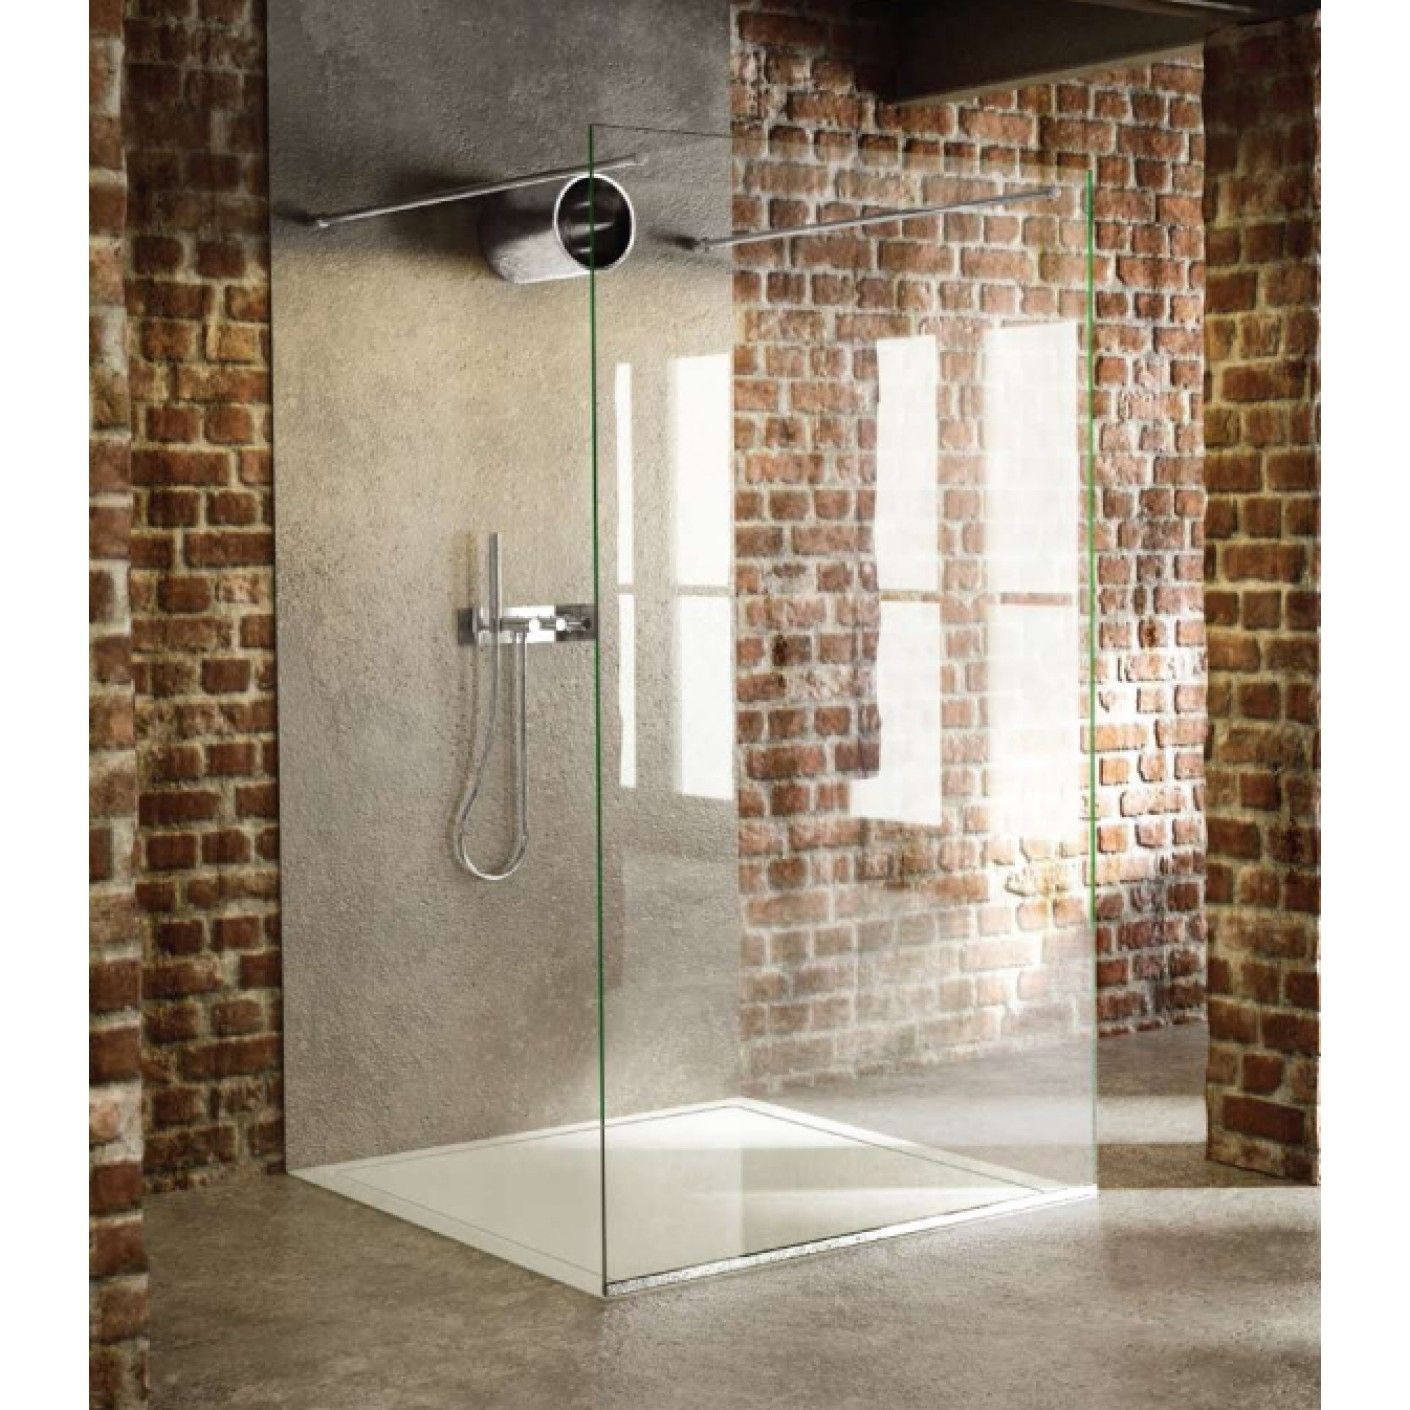 Fixed Panel | The Shower Lab Tantalum 20 Free Standing